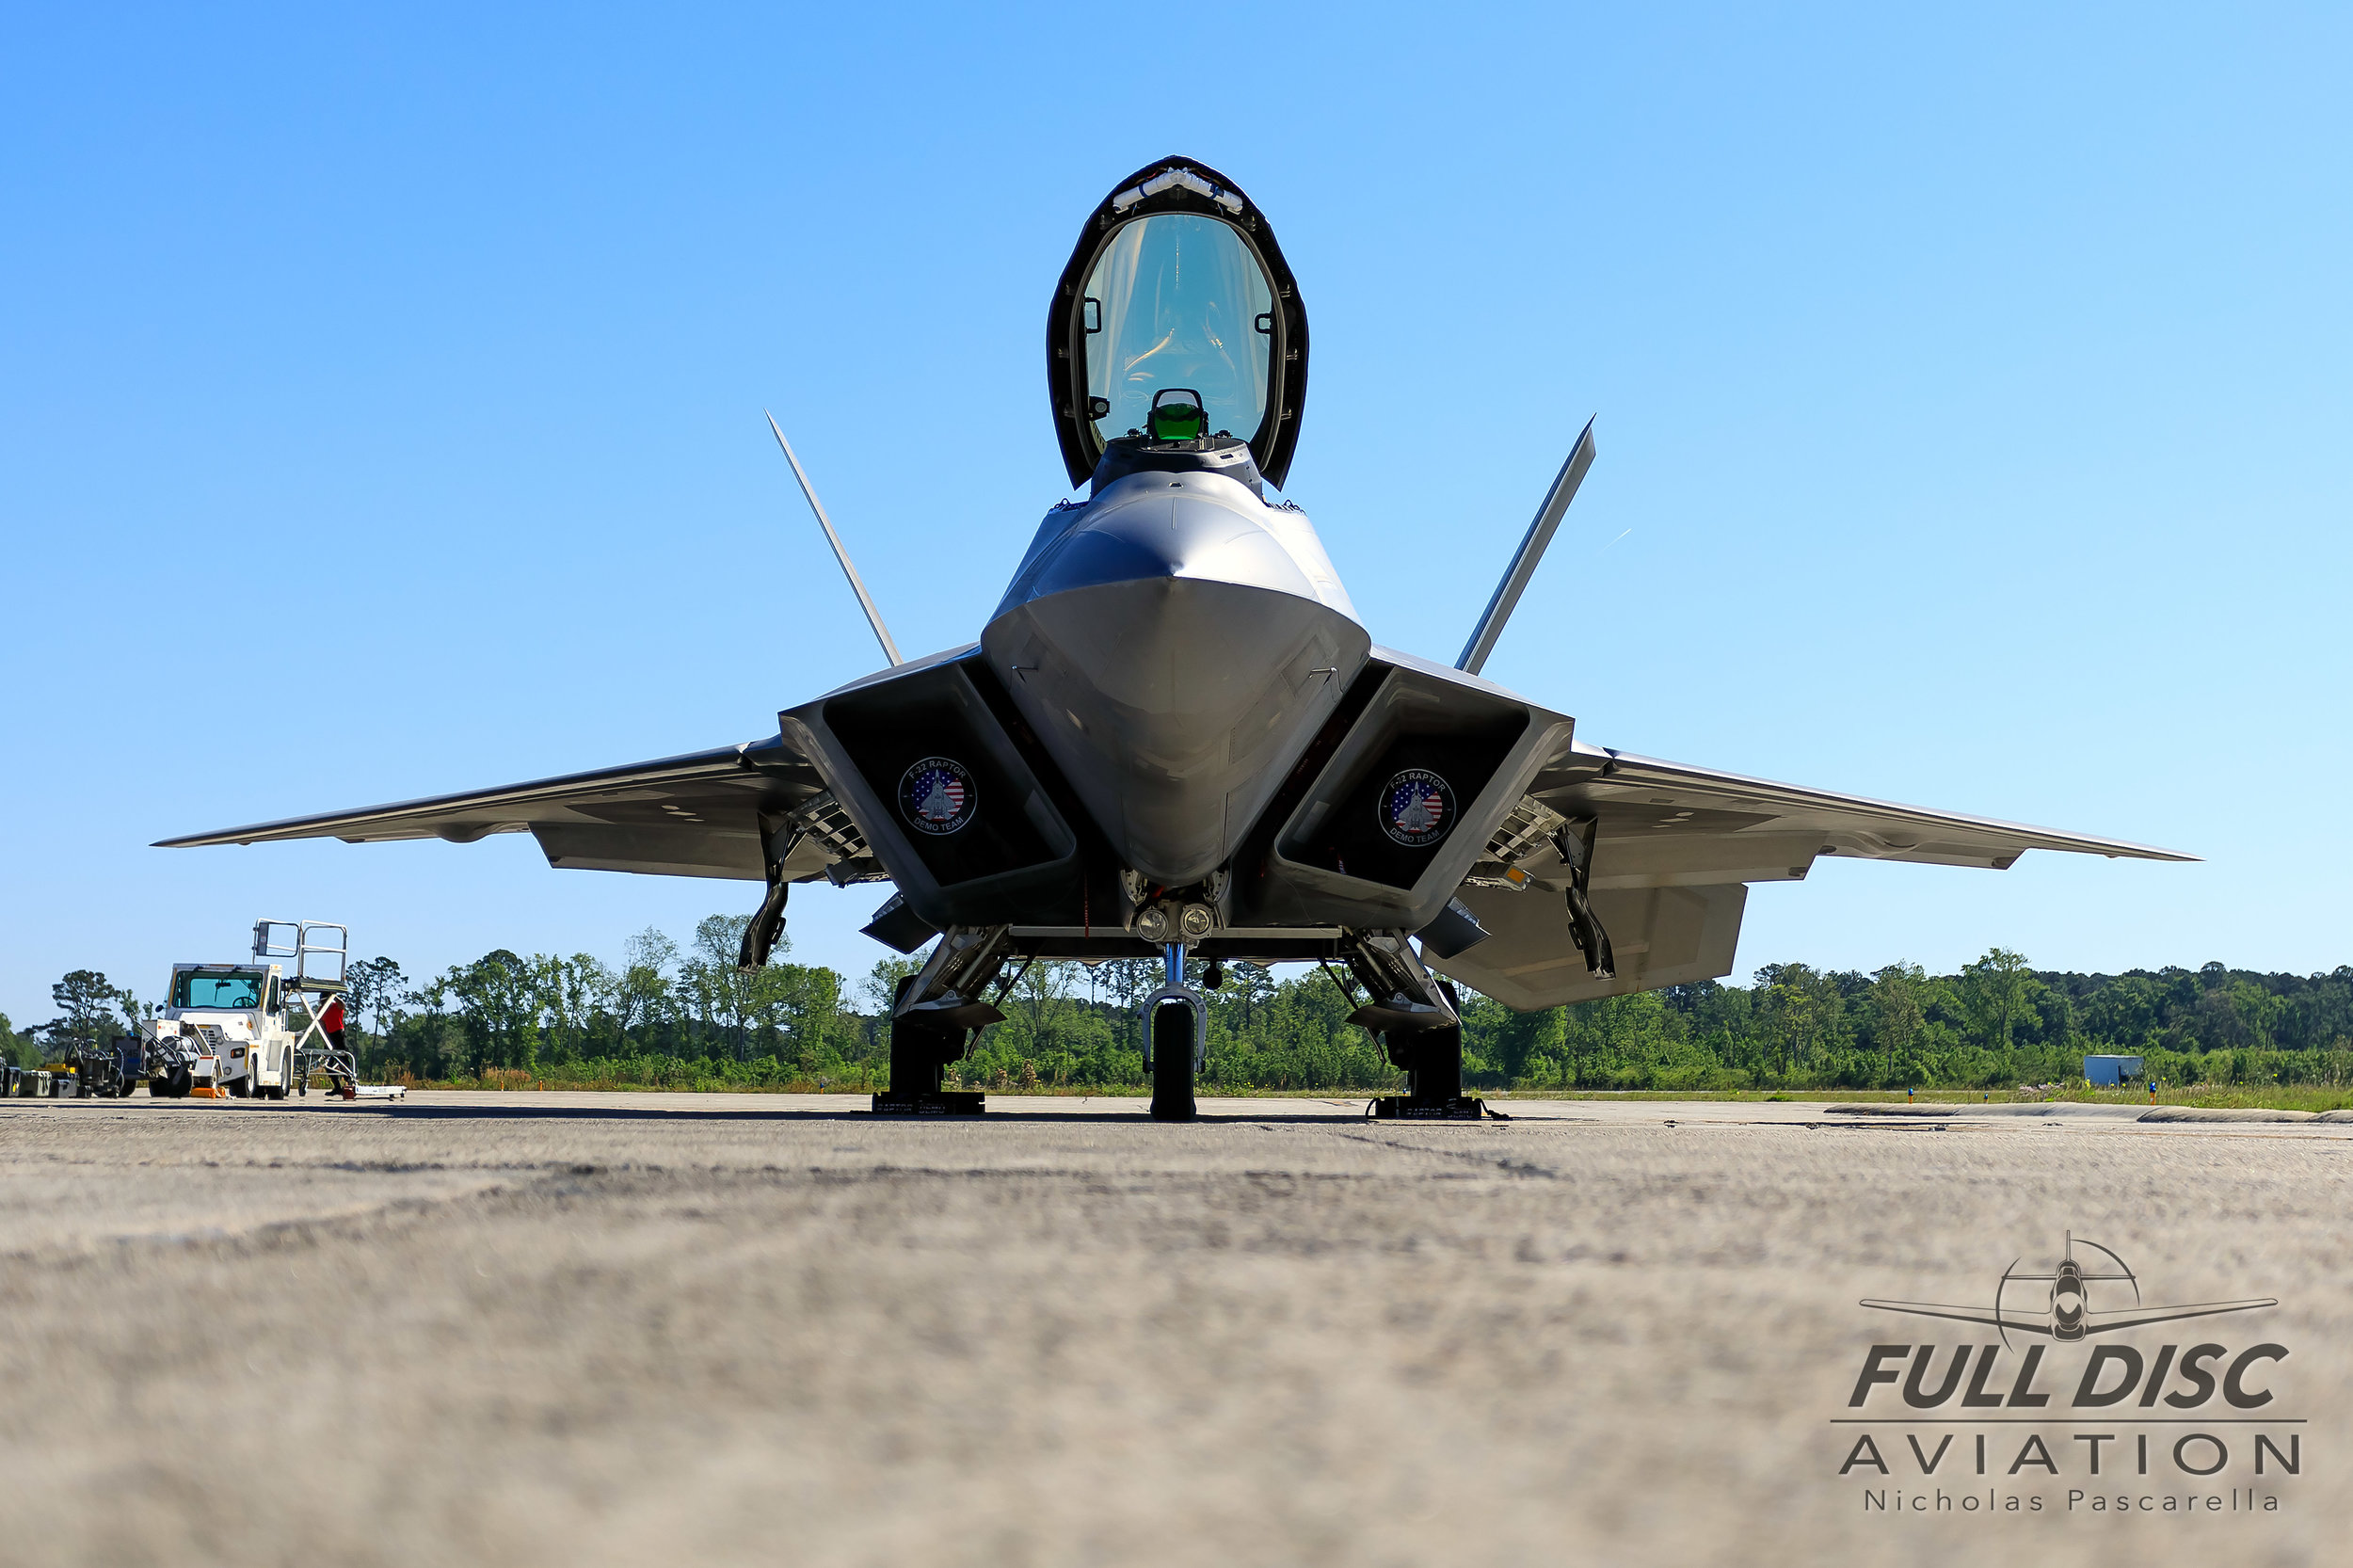 f22_headon_wormseye_f22demoteam_fulldiscaviation_nickpascarella_nicholaspascarella.jpg